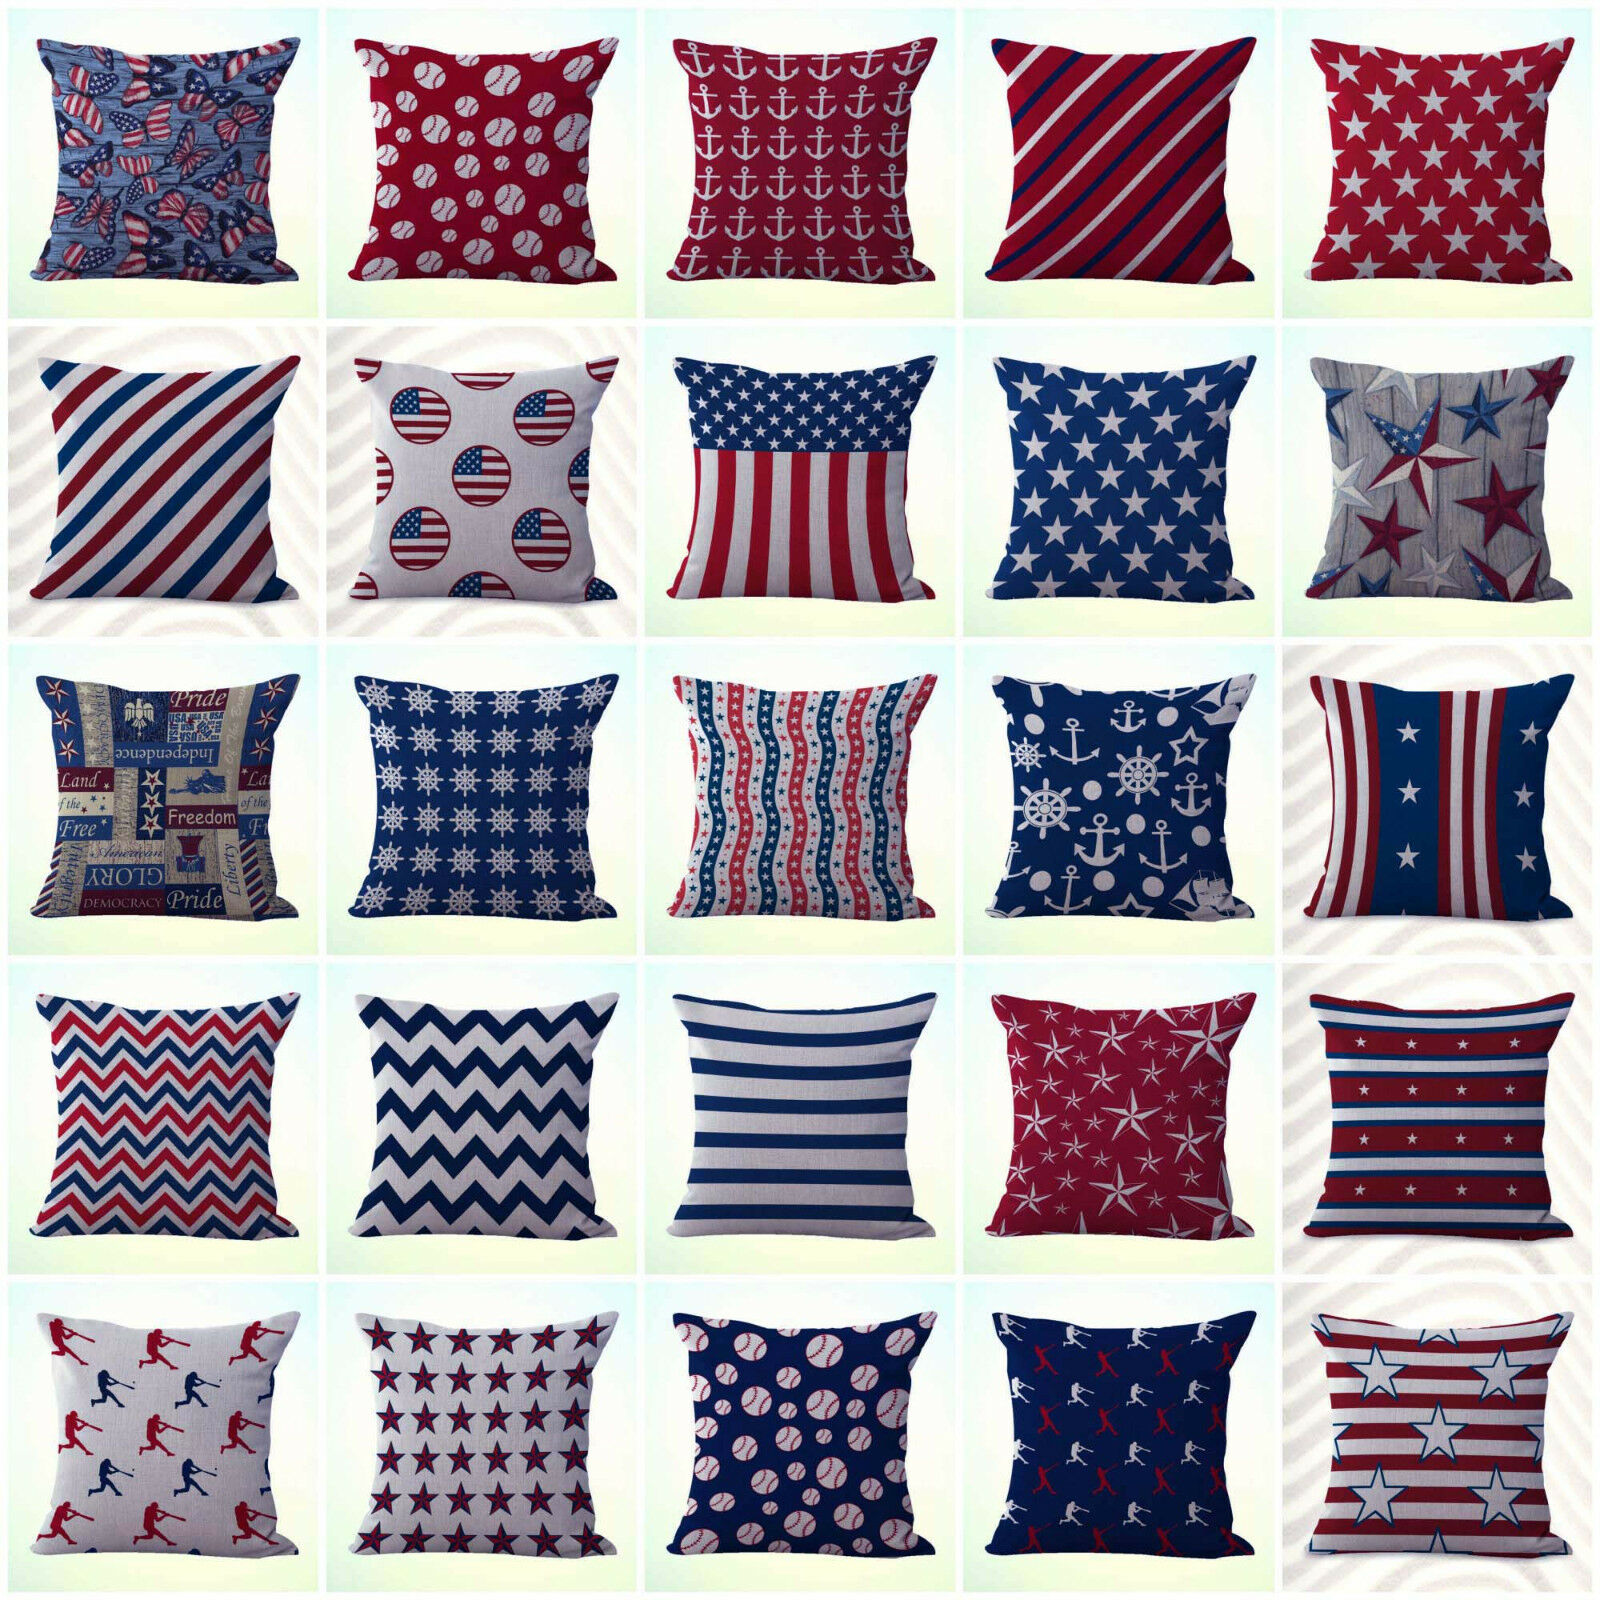 US Seller- 20pcs cushion covers patriotic America nautical pillow wholesale